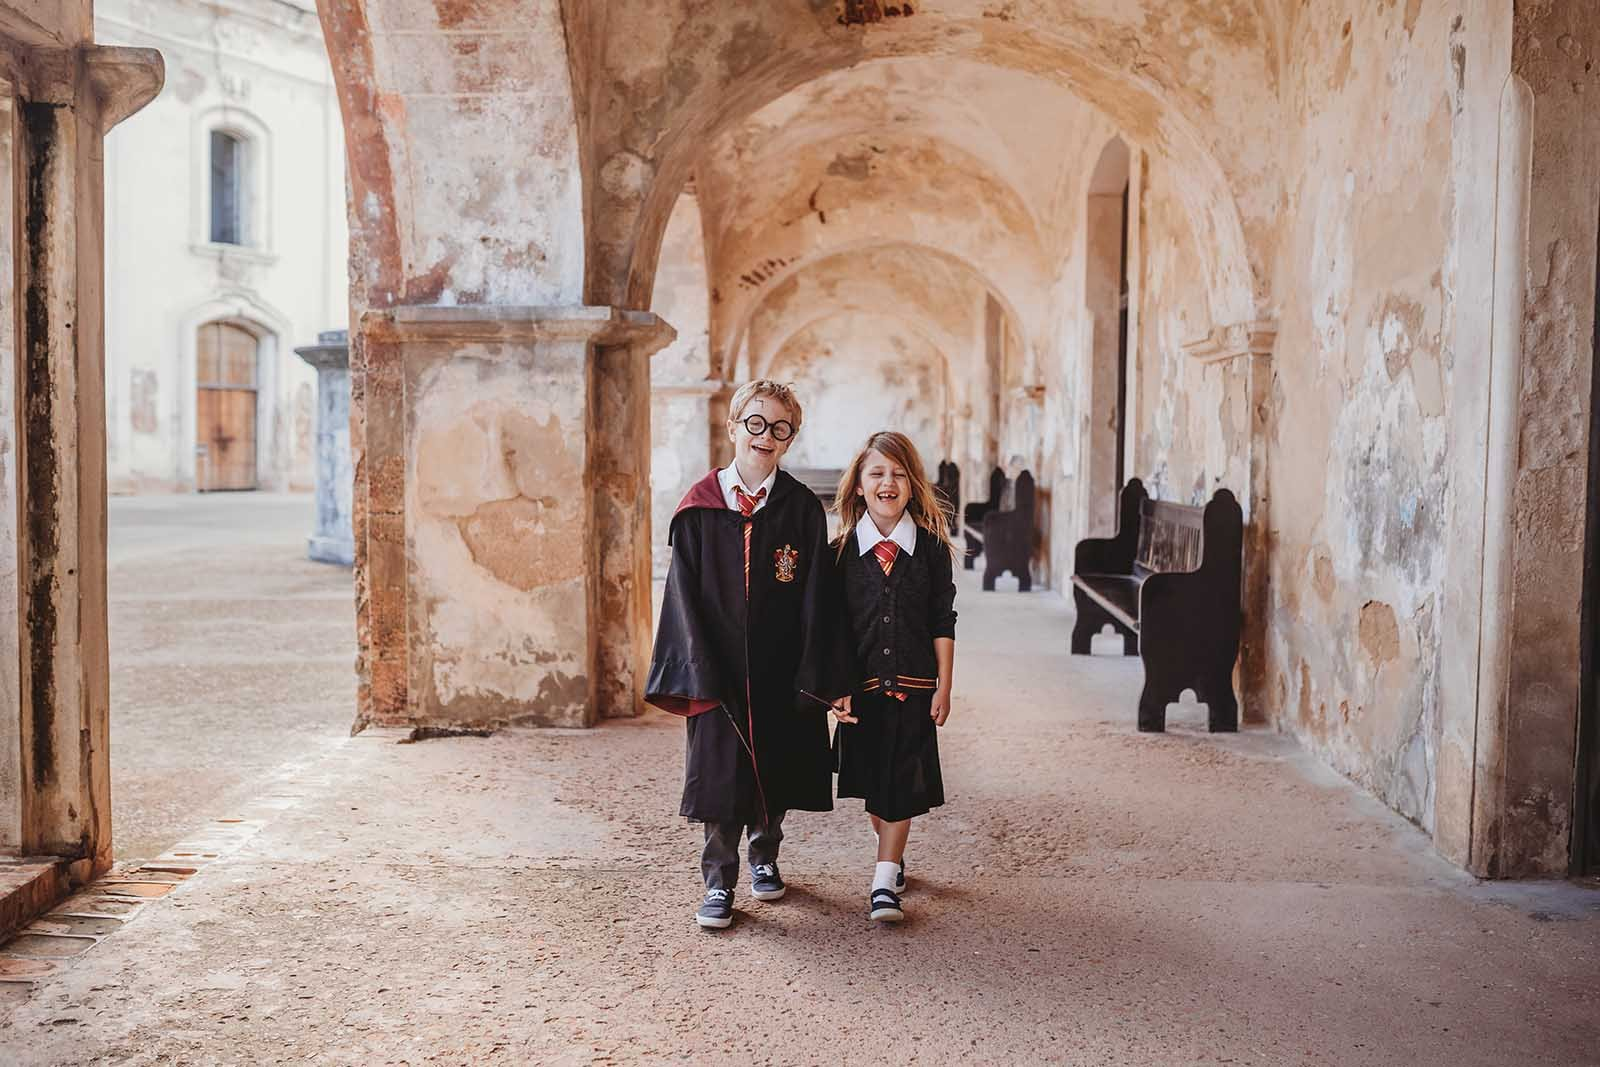 Harry Potter halloween costume photo session at a castle